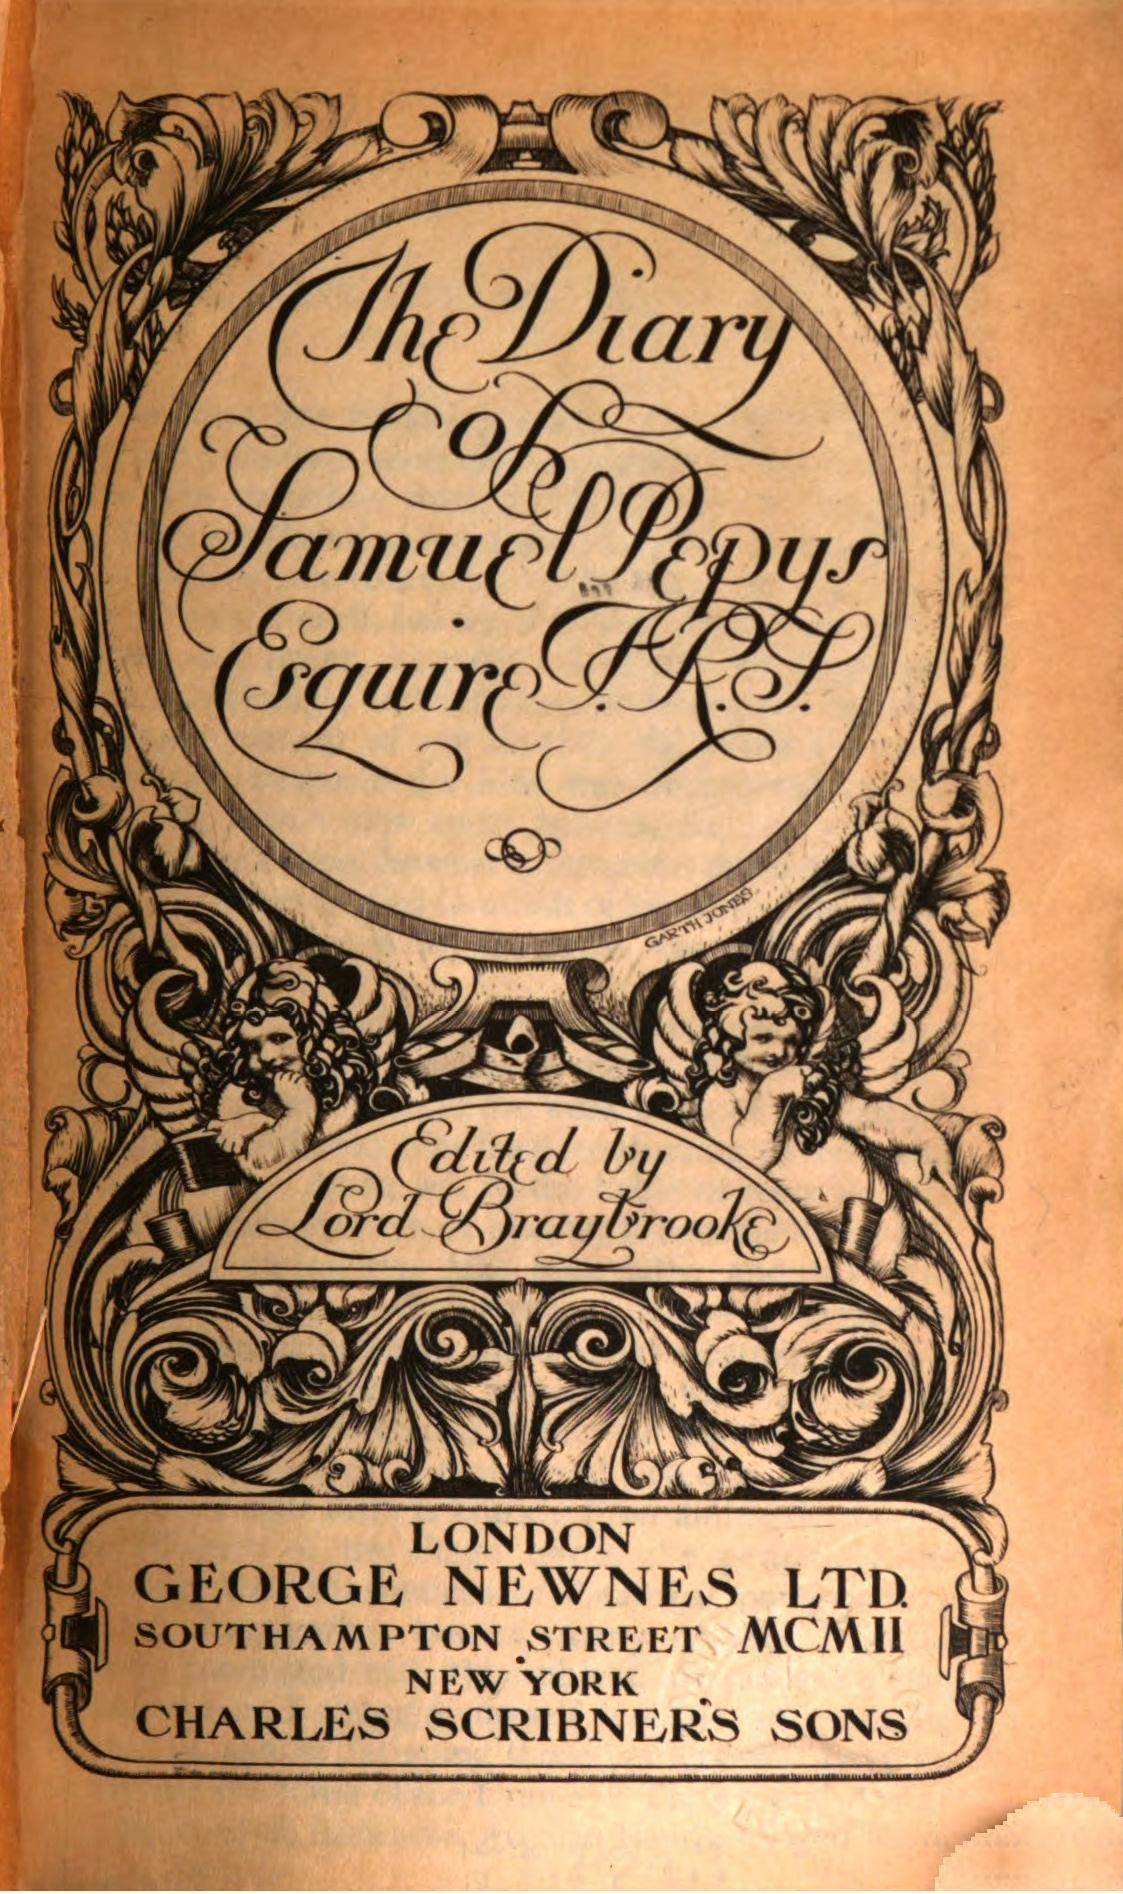 The Diary of Samuel Pepys - A Leisurely Daily Reading, Join as You Like |  75 Books Challenge for 2015 | LibraryThing